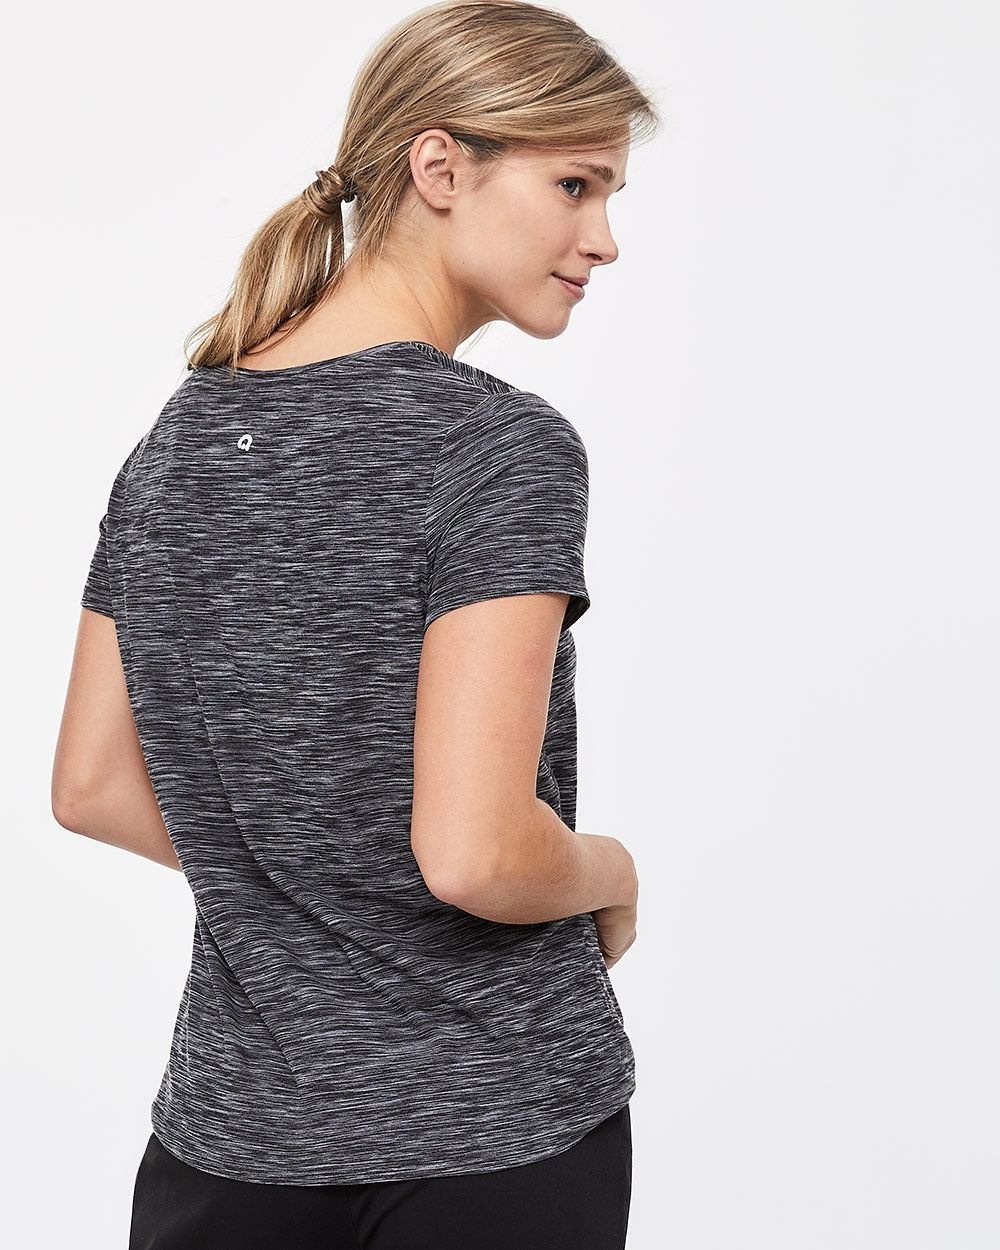 Hyba Essential Ultra Soft T-shirt